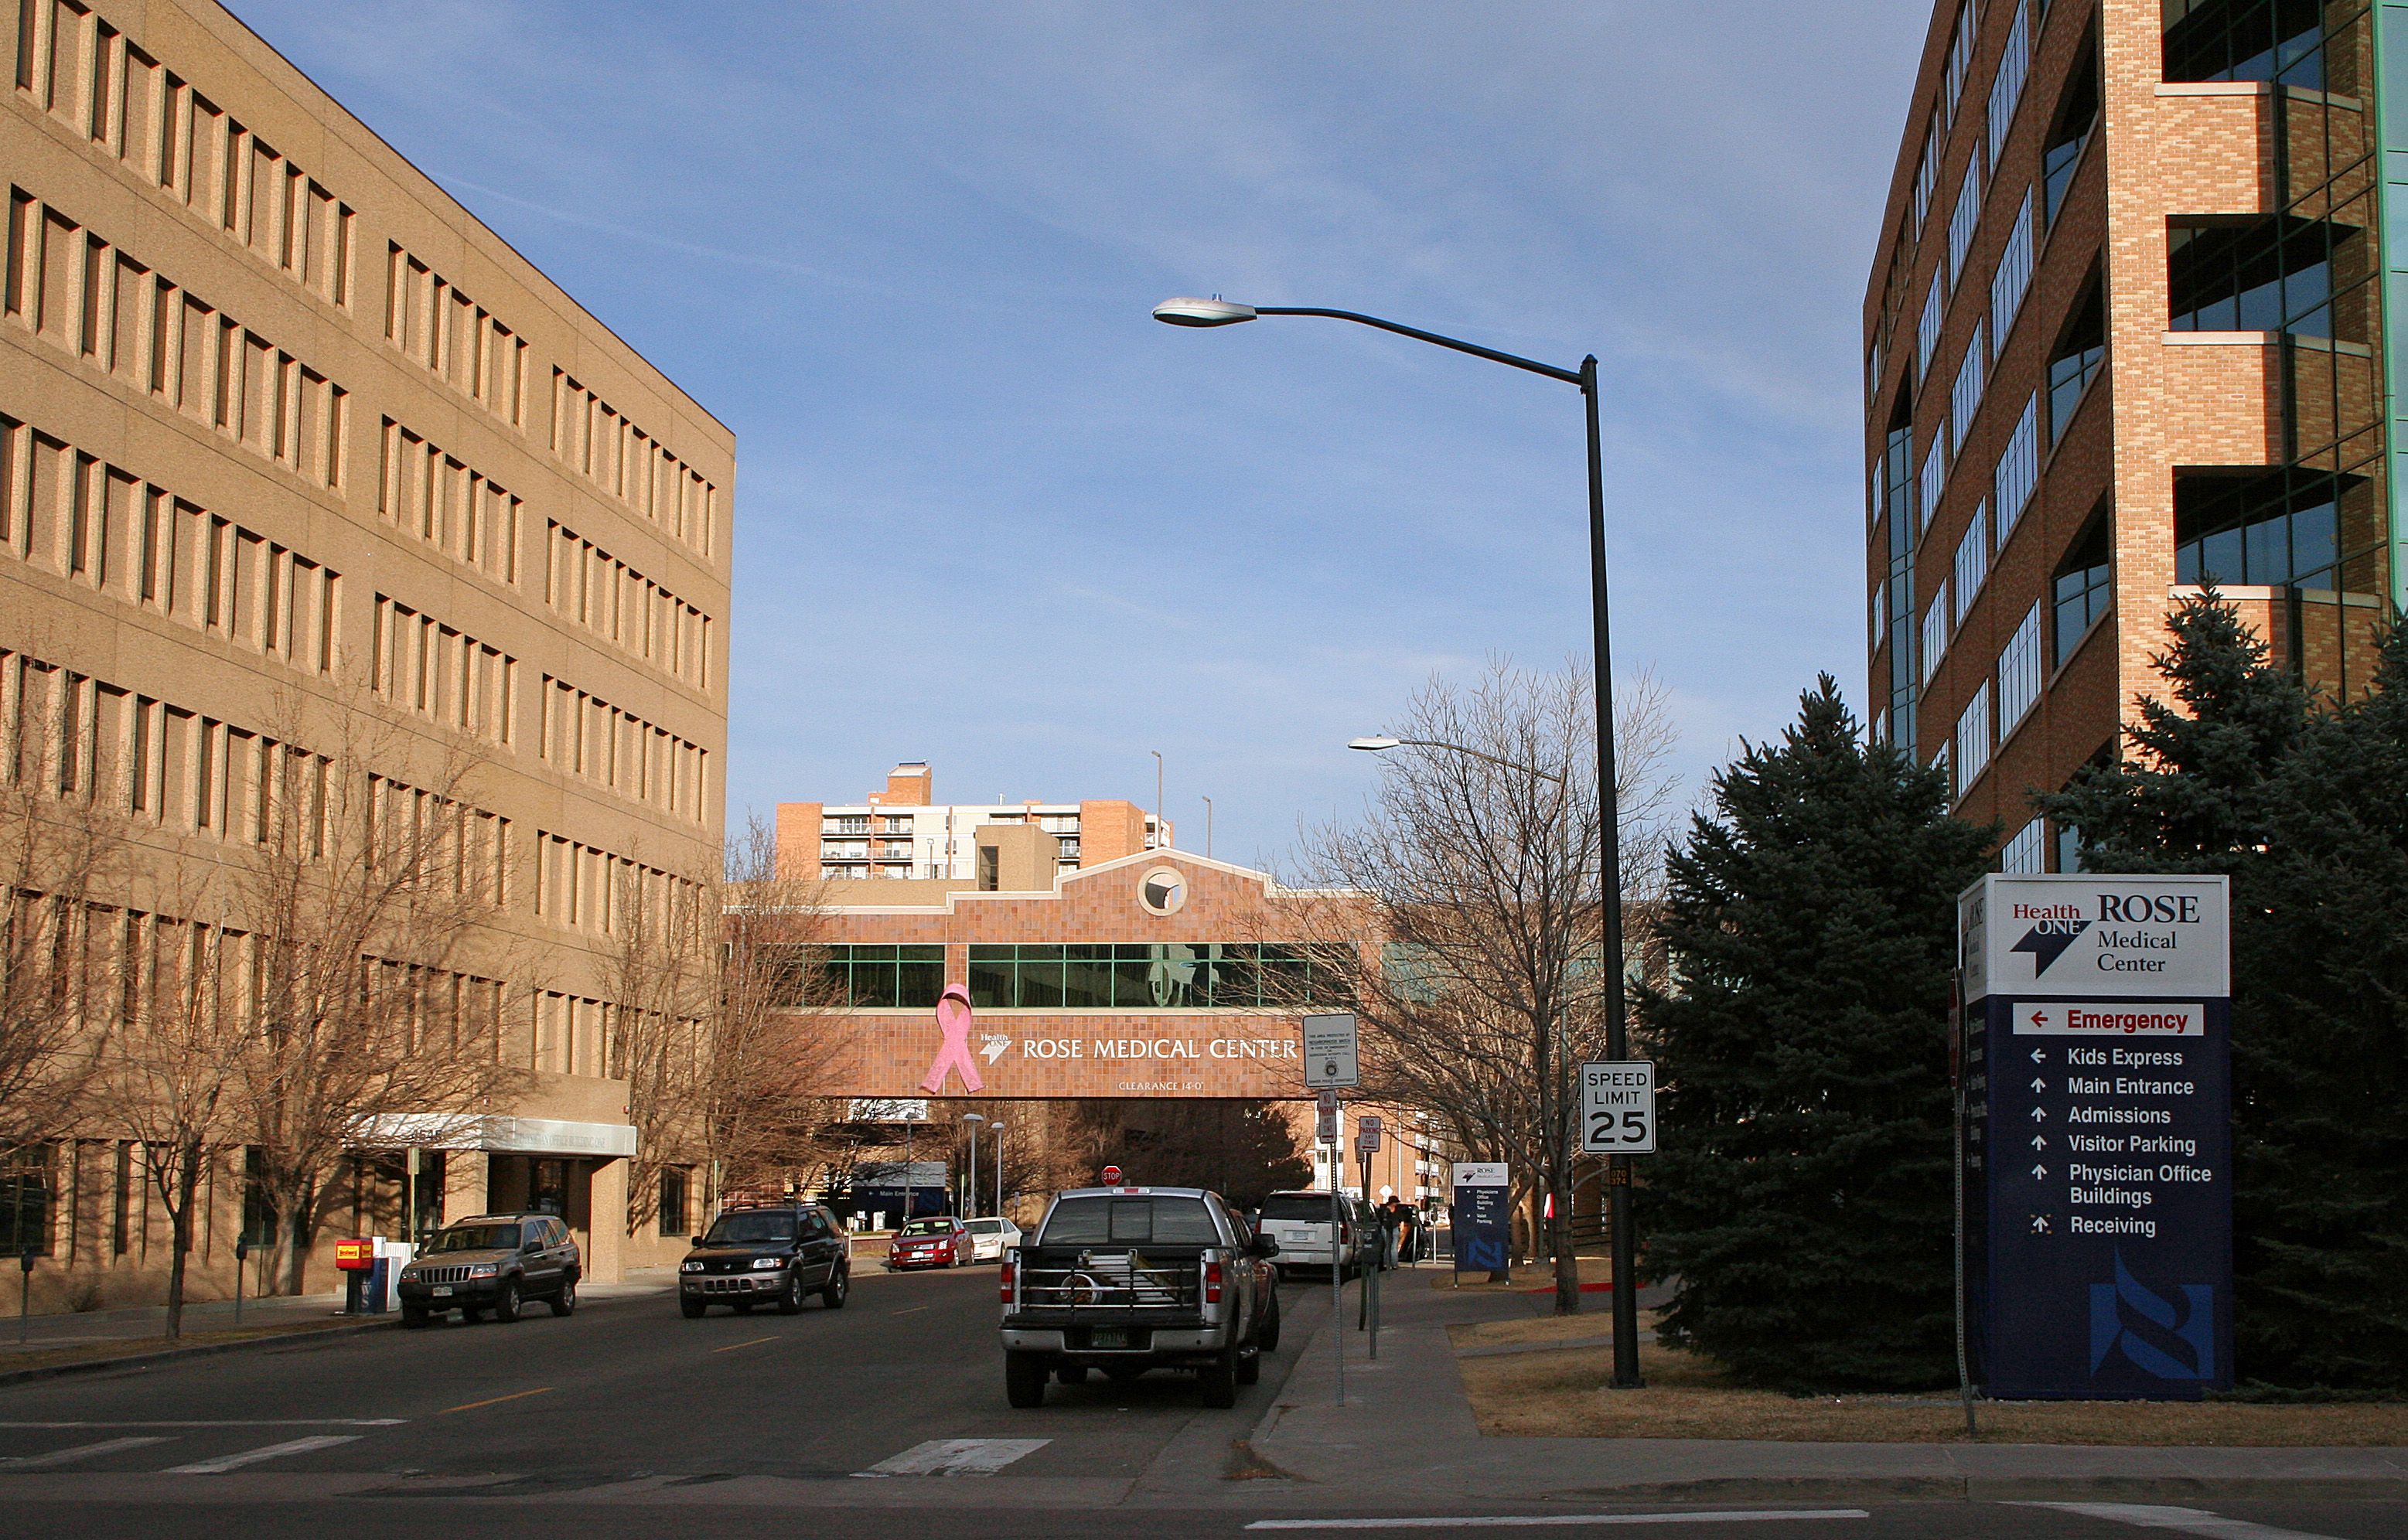 East Avenue Medical Center Website http://wn.com/Rose_Medical_Center